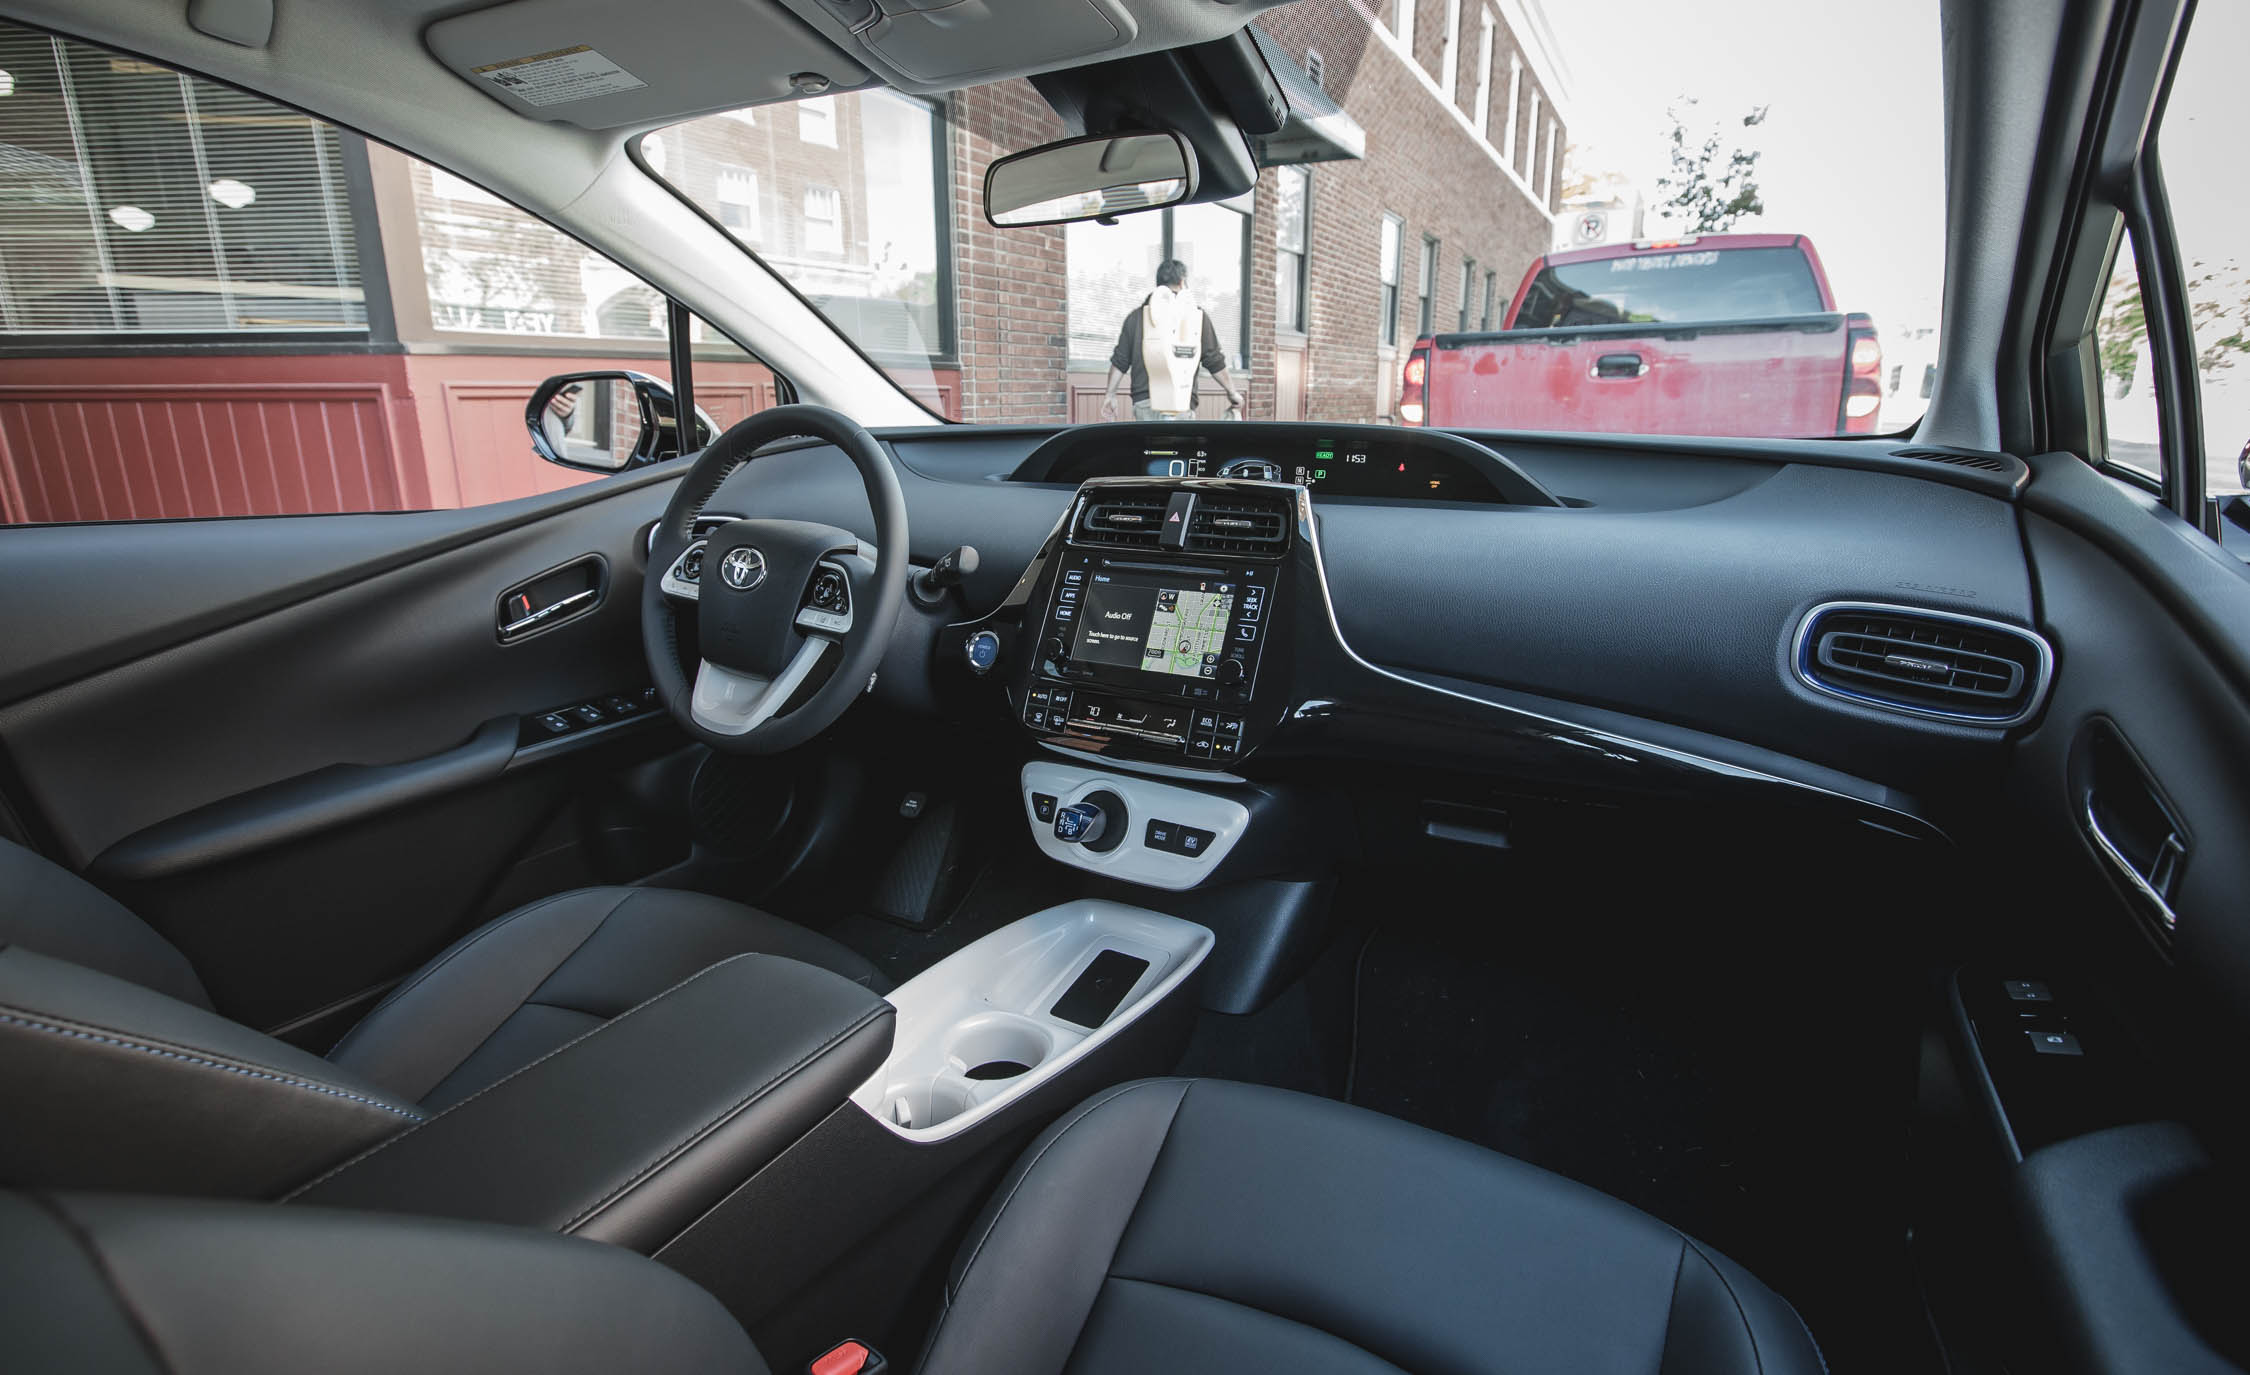 2017 Toyota Prius Interior Dashboard (Photo 42 of 64)